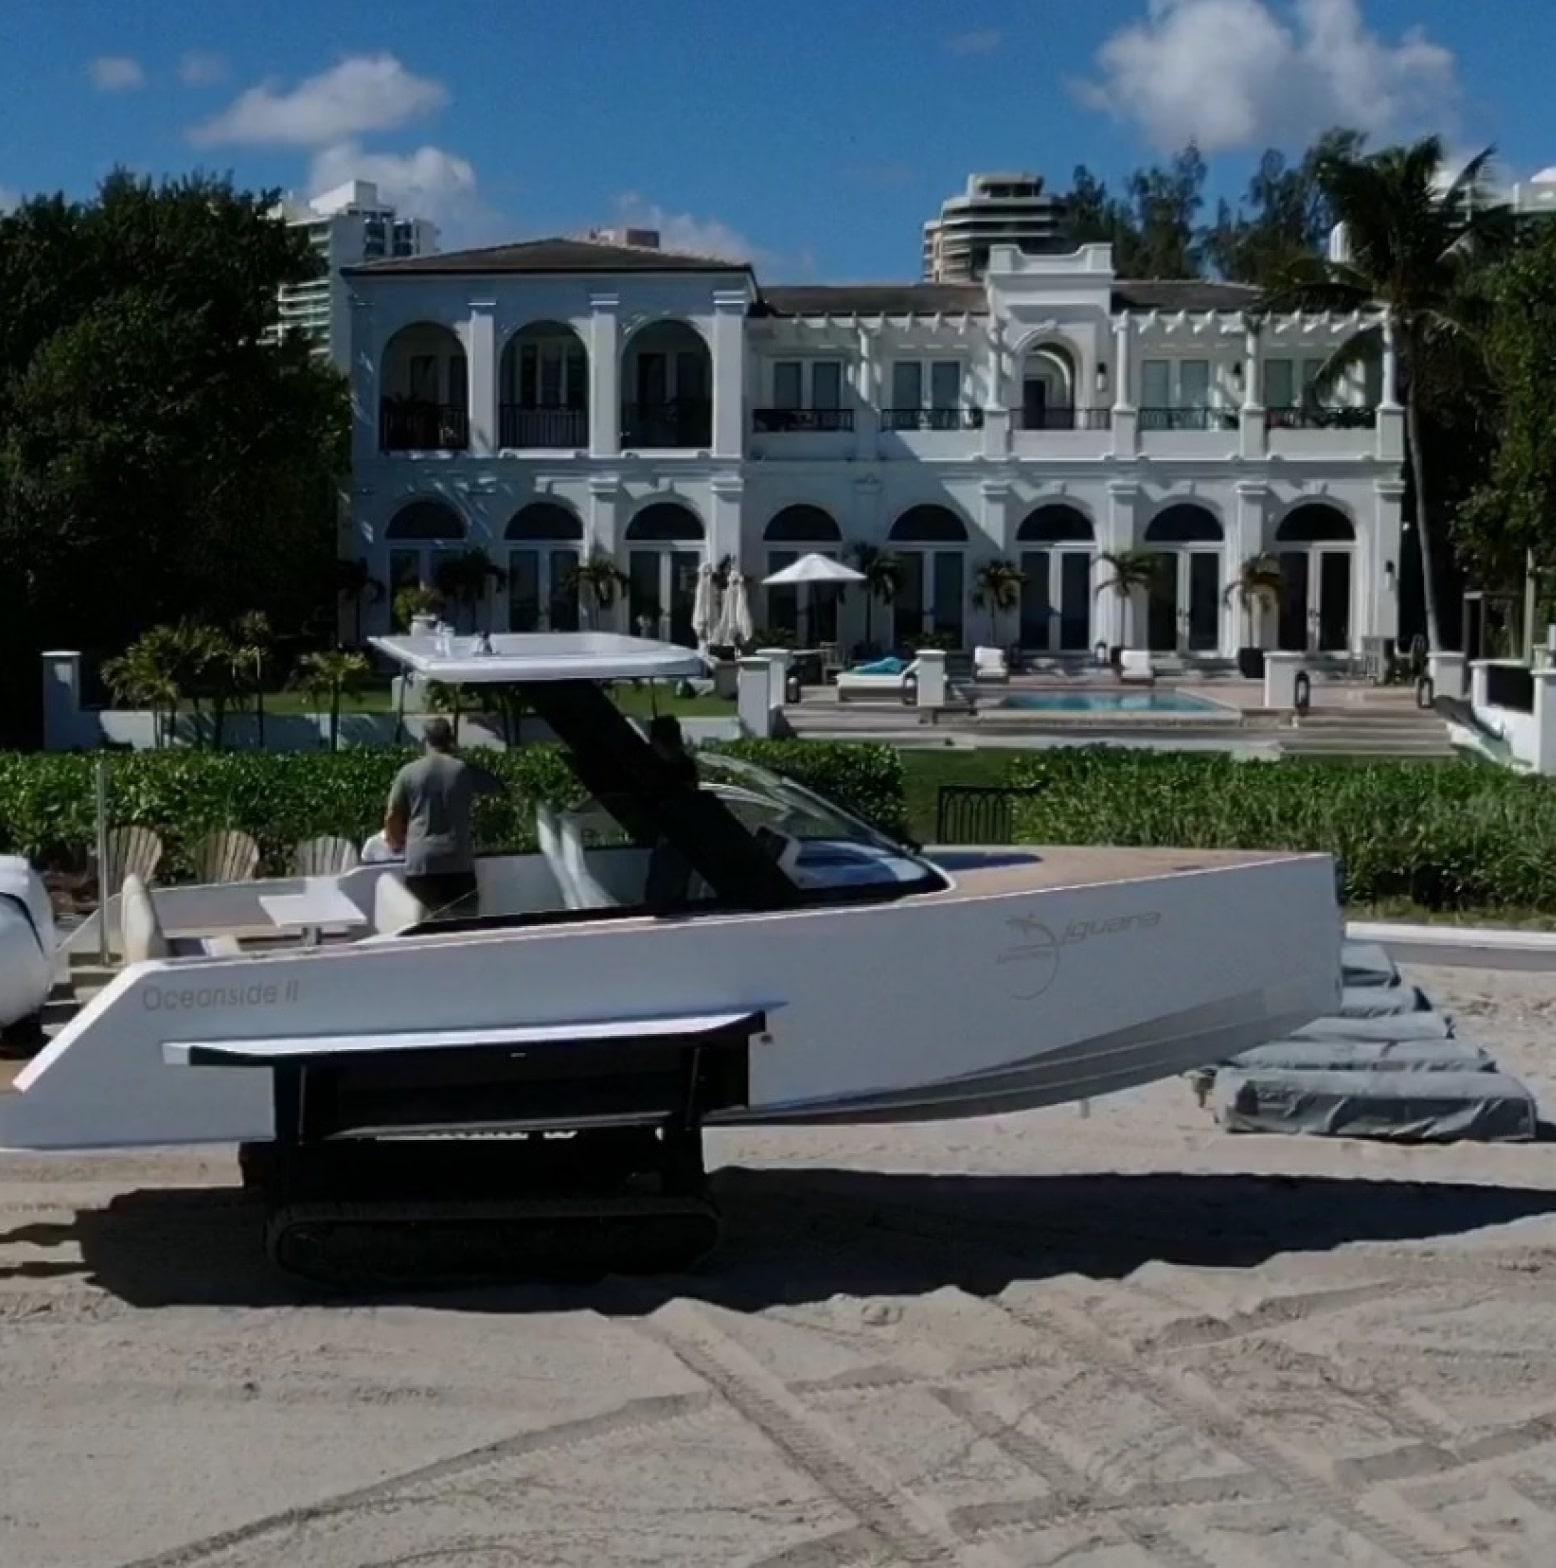 Waterfront hotel with an Iguana Original amphibious boat